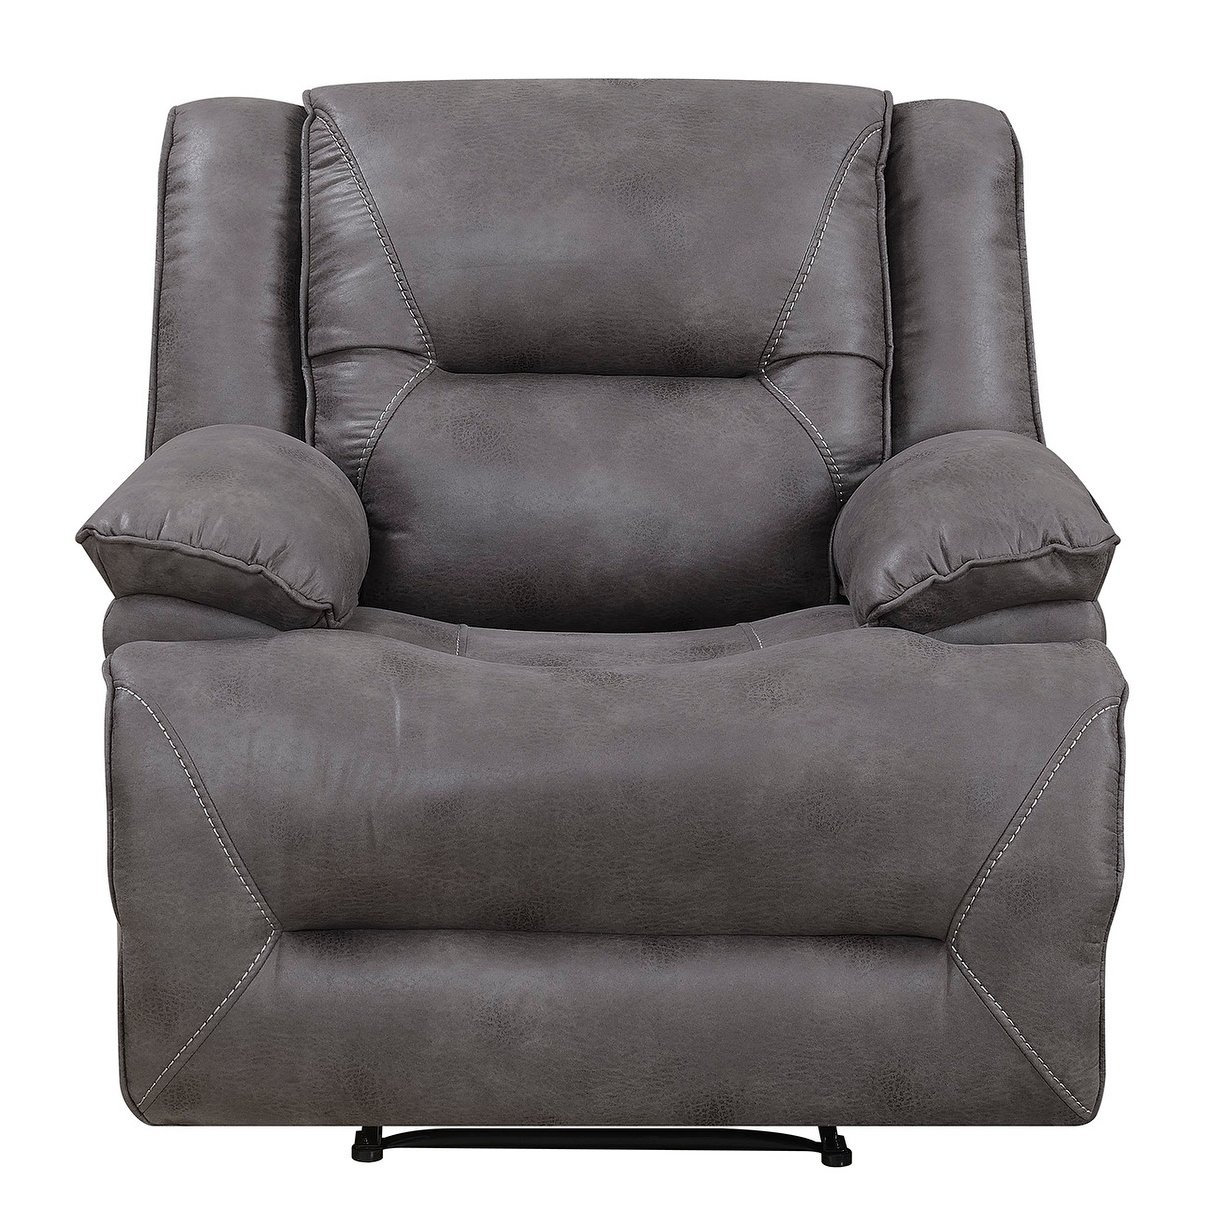 Shop Dylan Power Recliner With Memory Foam Seat Topper And Usb Within Travis Dk Grey Leather 6 Piece Power Reclining Sectionals With Power Headrest & Usb (View 12 of 25)